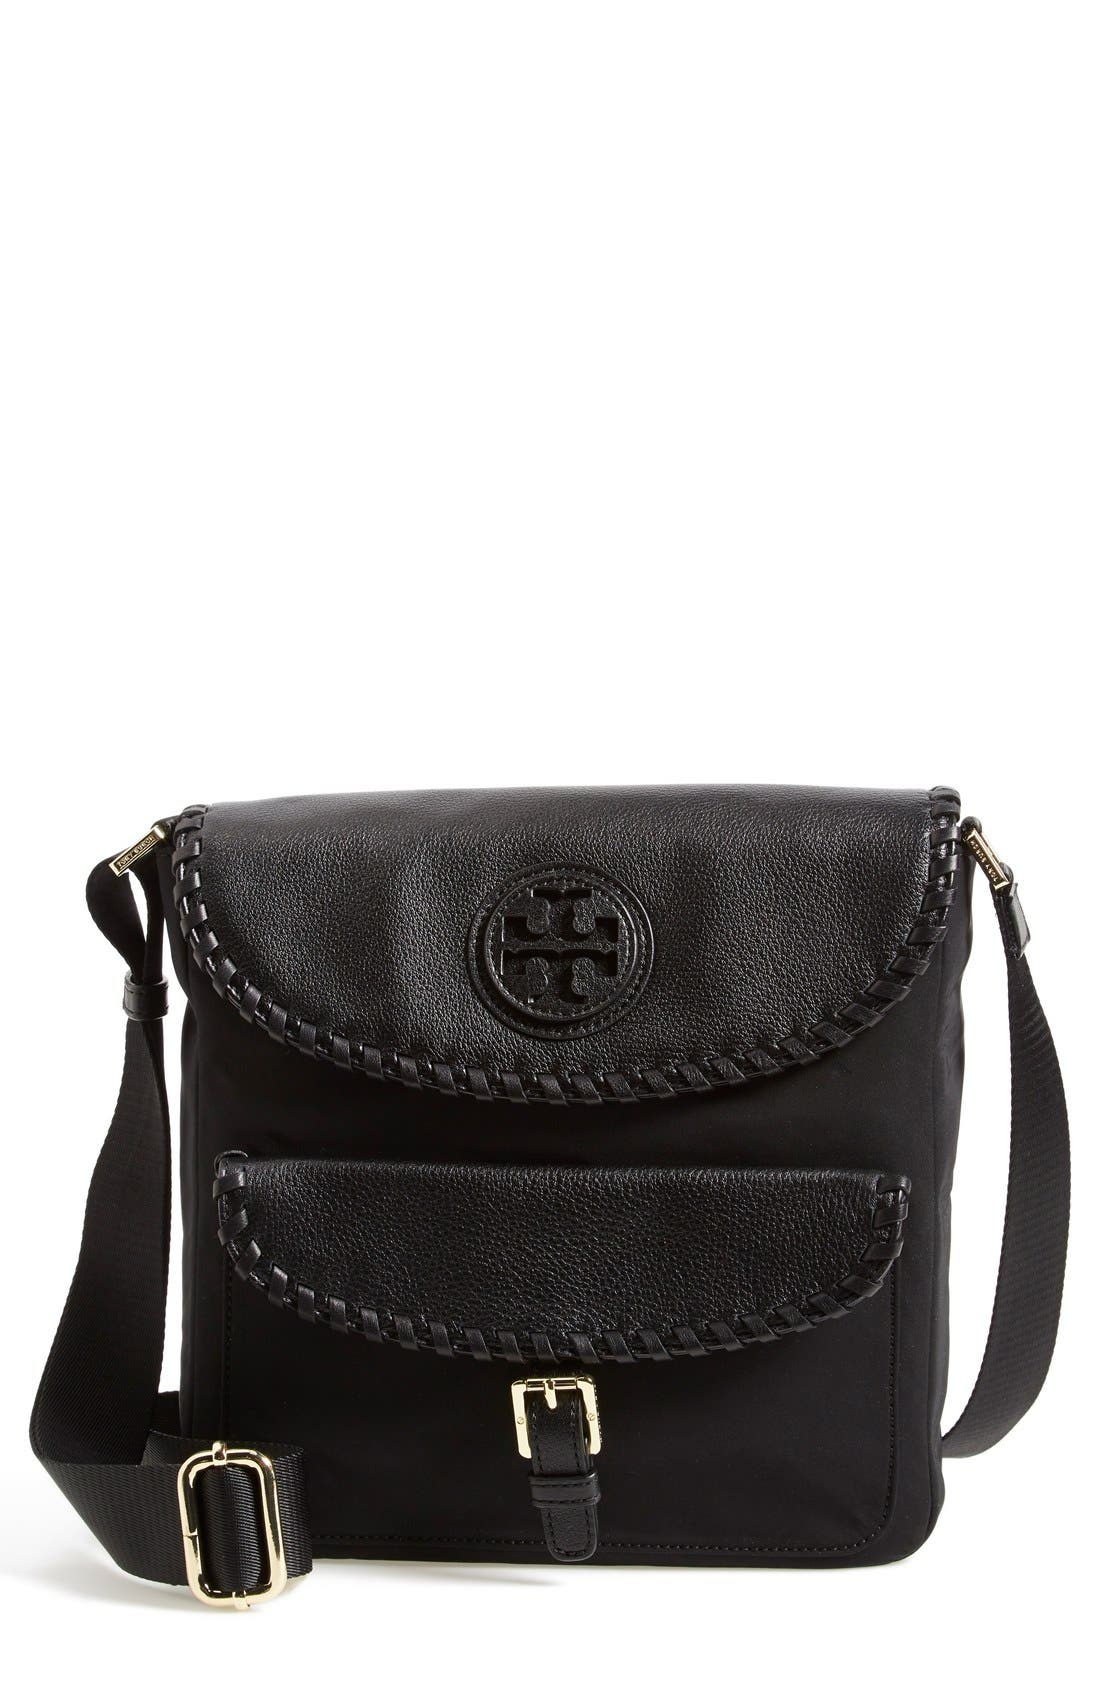 Alternate Image 1 Selected - Tory Burch 'Marion' Messenger Bag